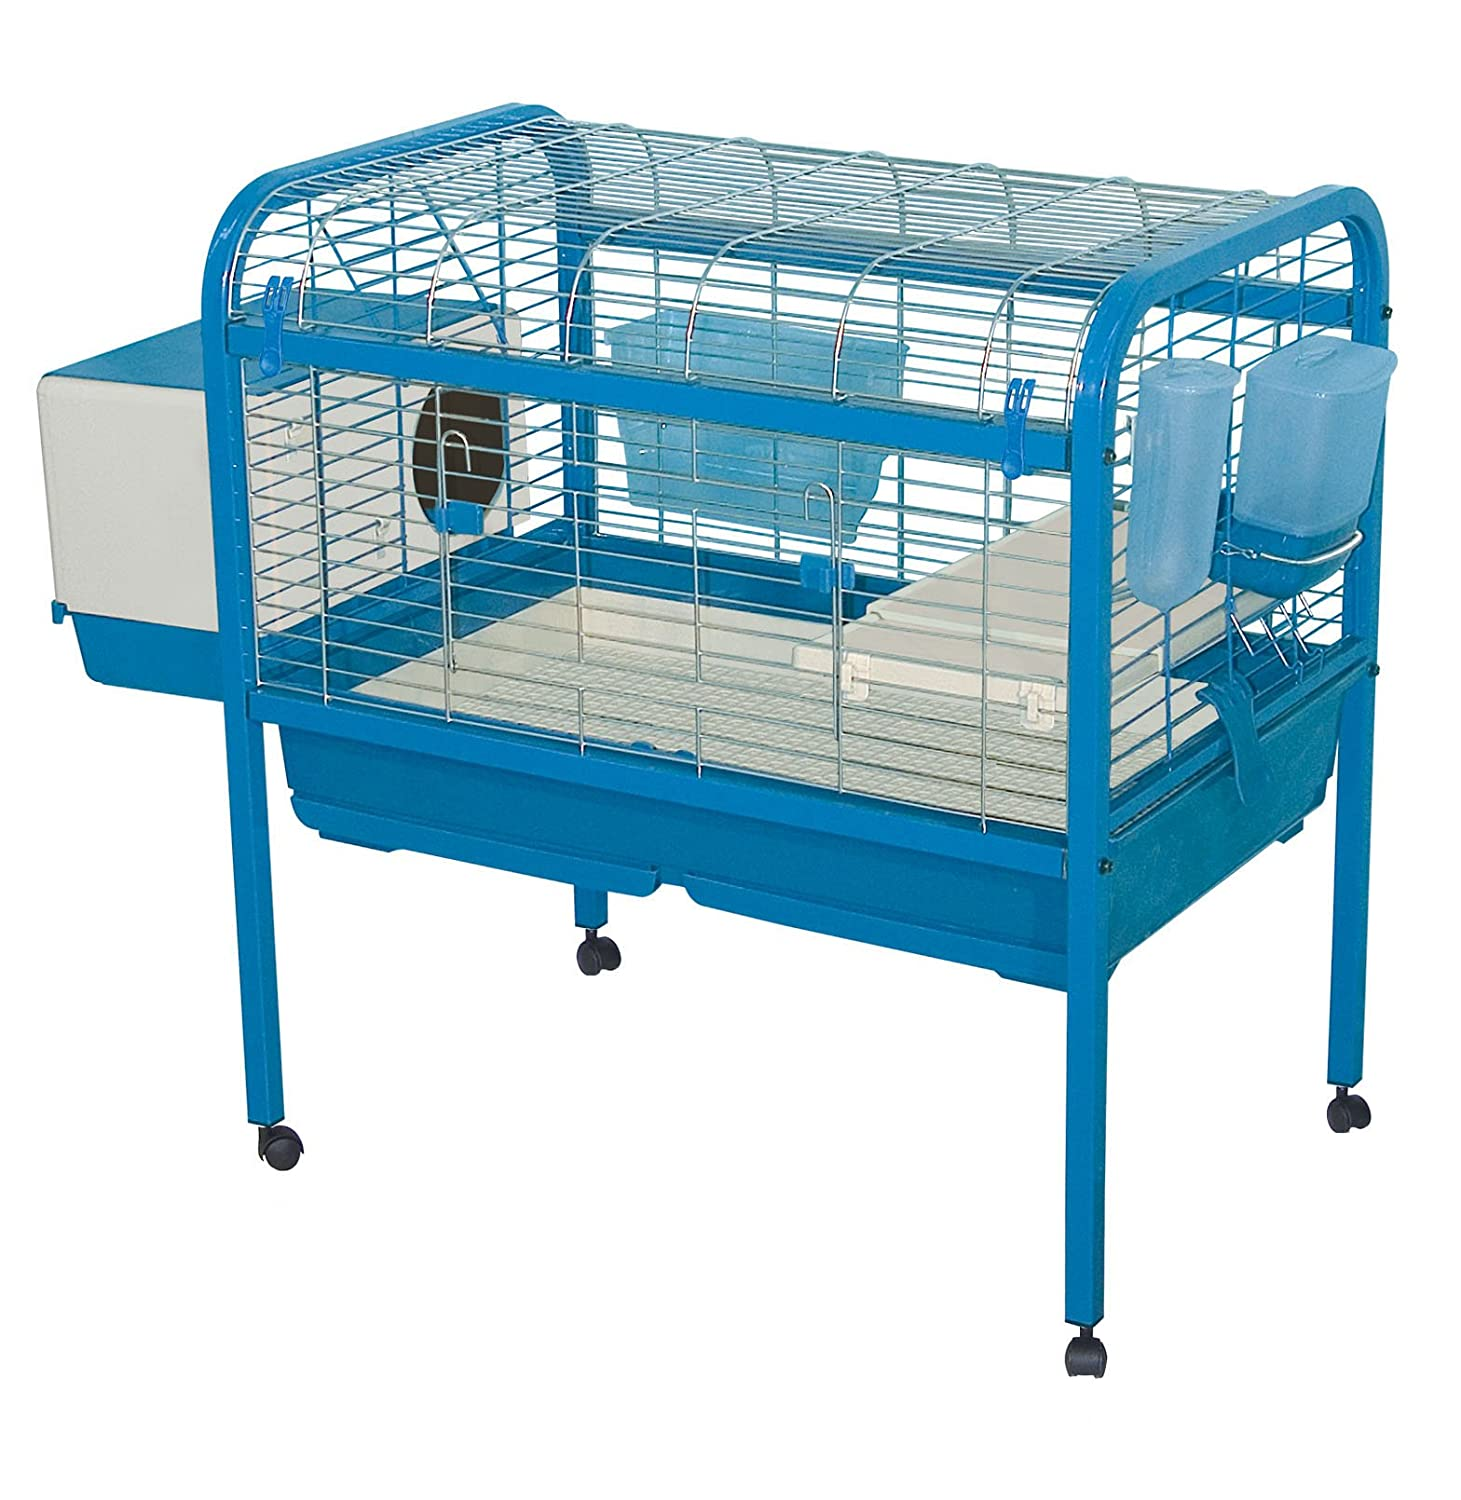 Marchioro Luna 82 Cage for Small Animals with wheels, 32.25 inches ...